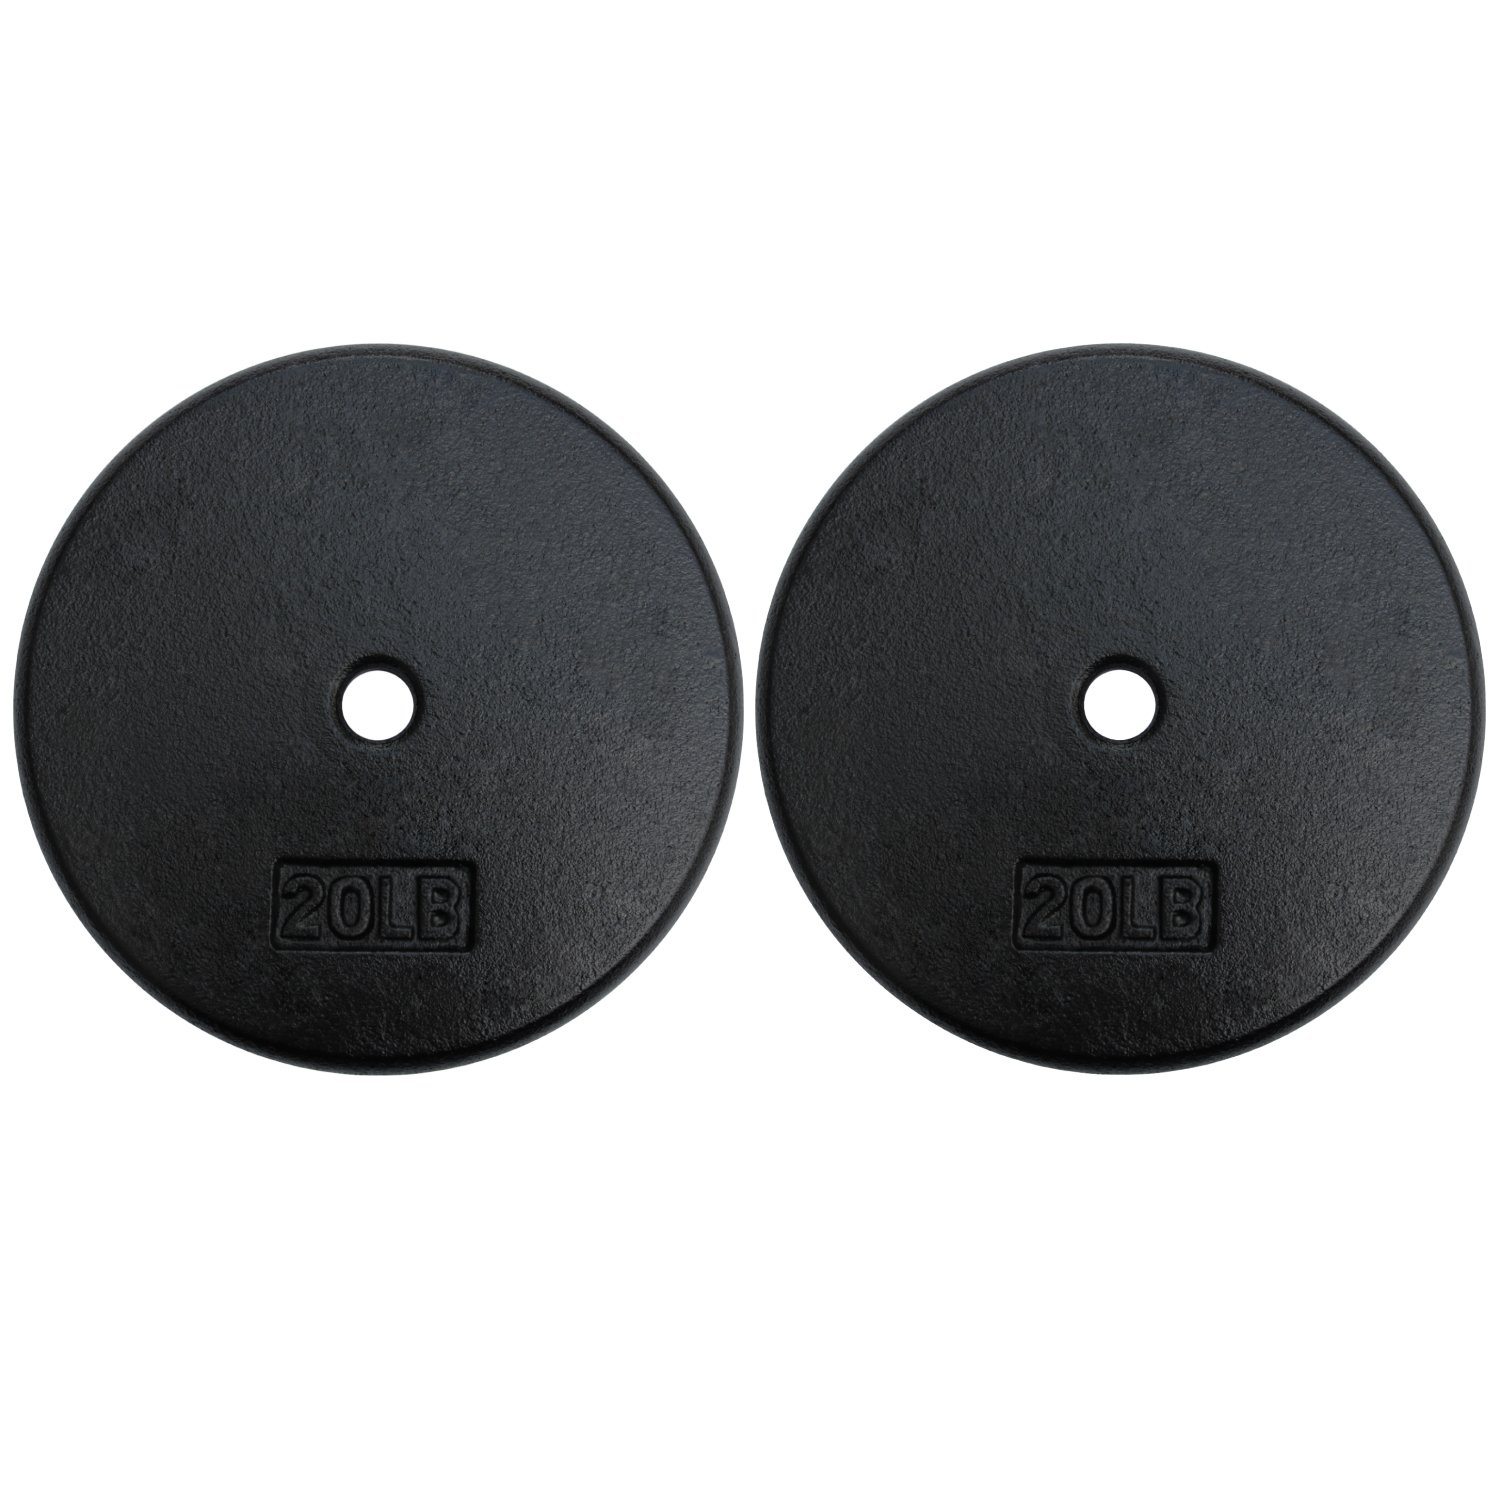 A2ZCARE Standard Cast Iron Weight Plates 1-Inch Center-Hole for Dumbbells, Standard Barbell 10, 15, 20, 25 lbs (20 lbs - Pair)